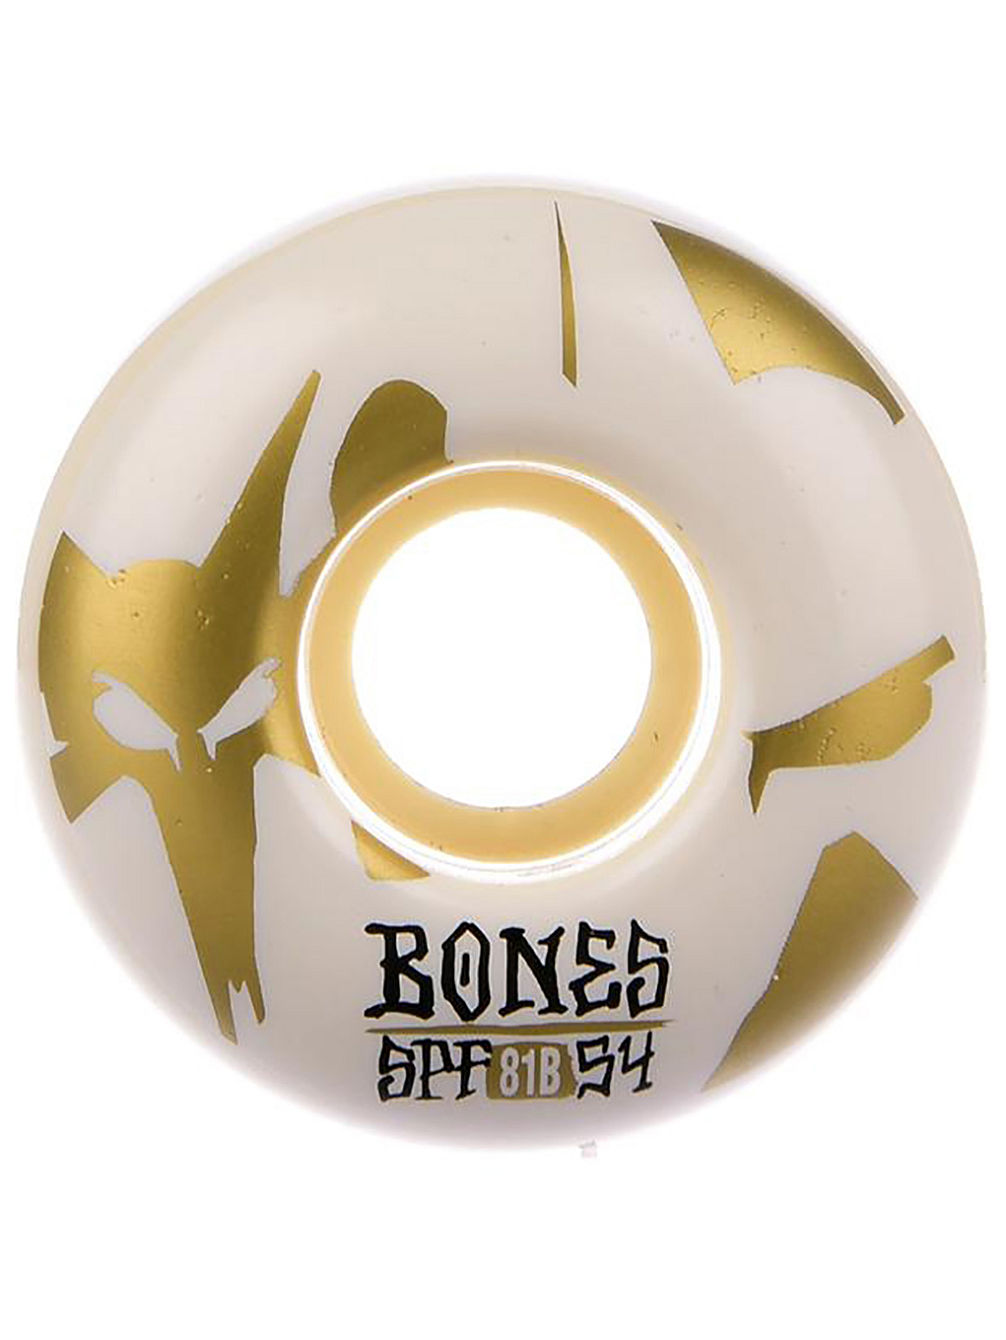 Spf Reflections 81B P2 56mm Wheels